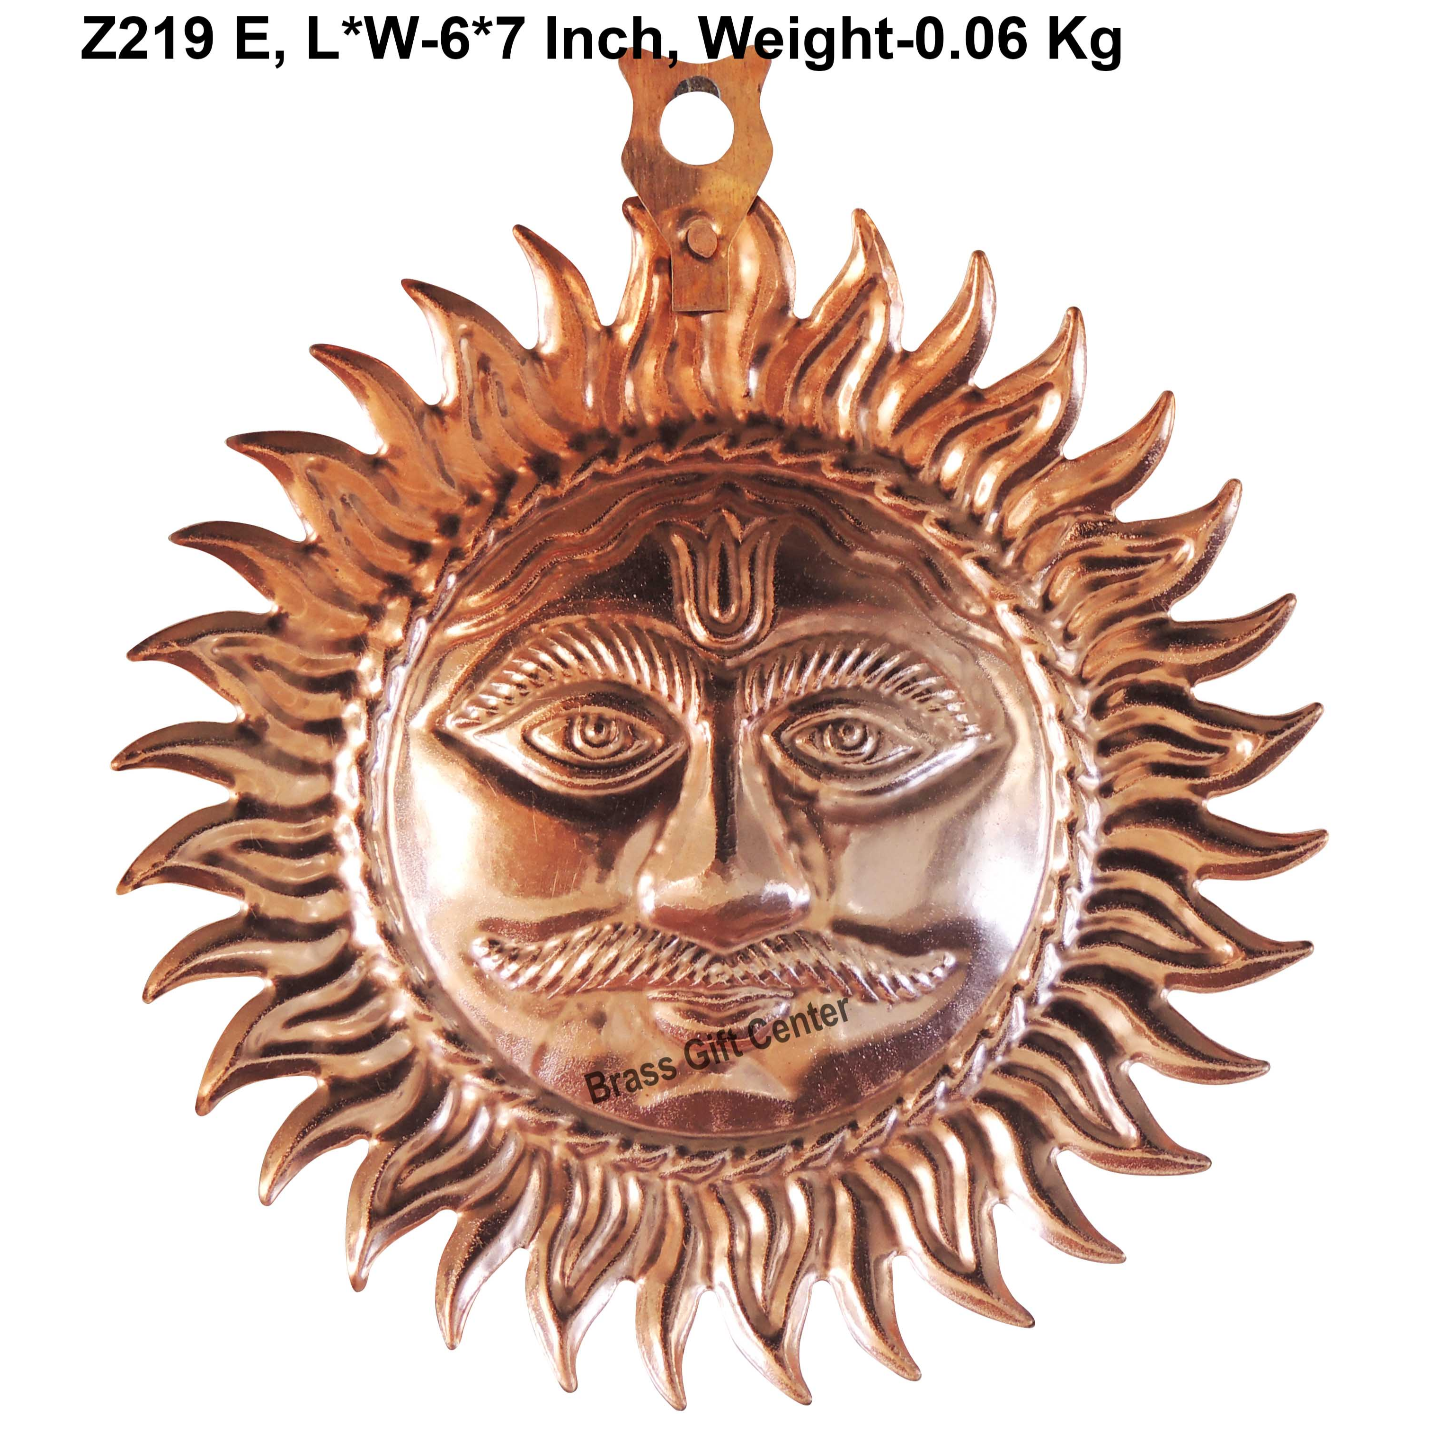 Copper Metal Wall Hanging Sun With Copper Finish - 7 Inch Z219 E